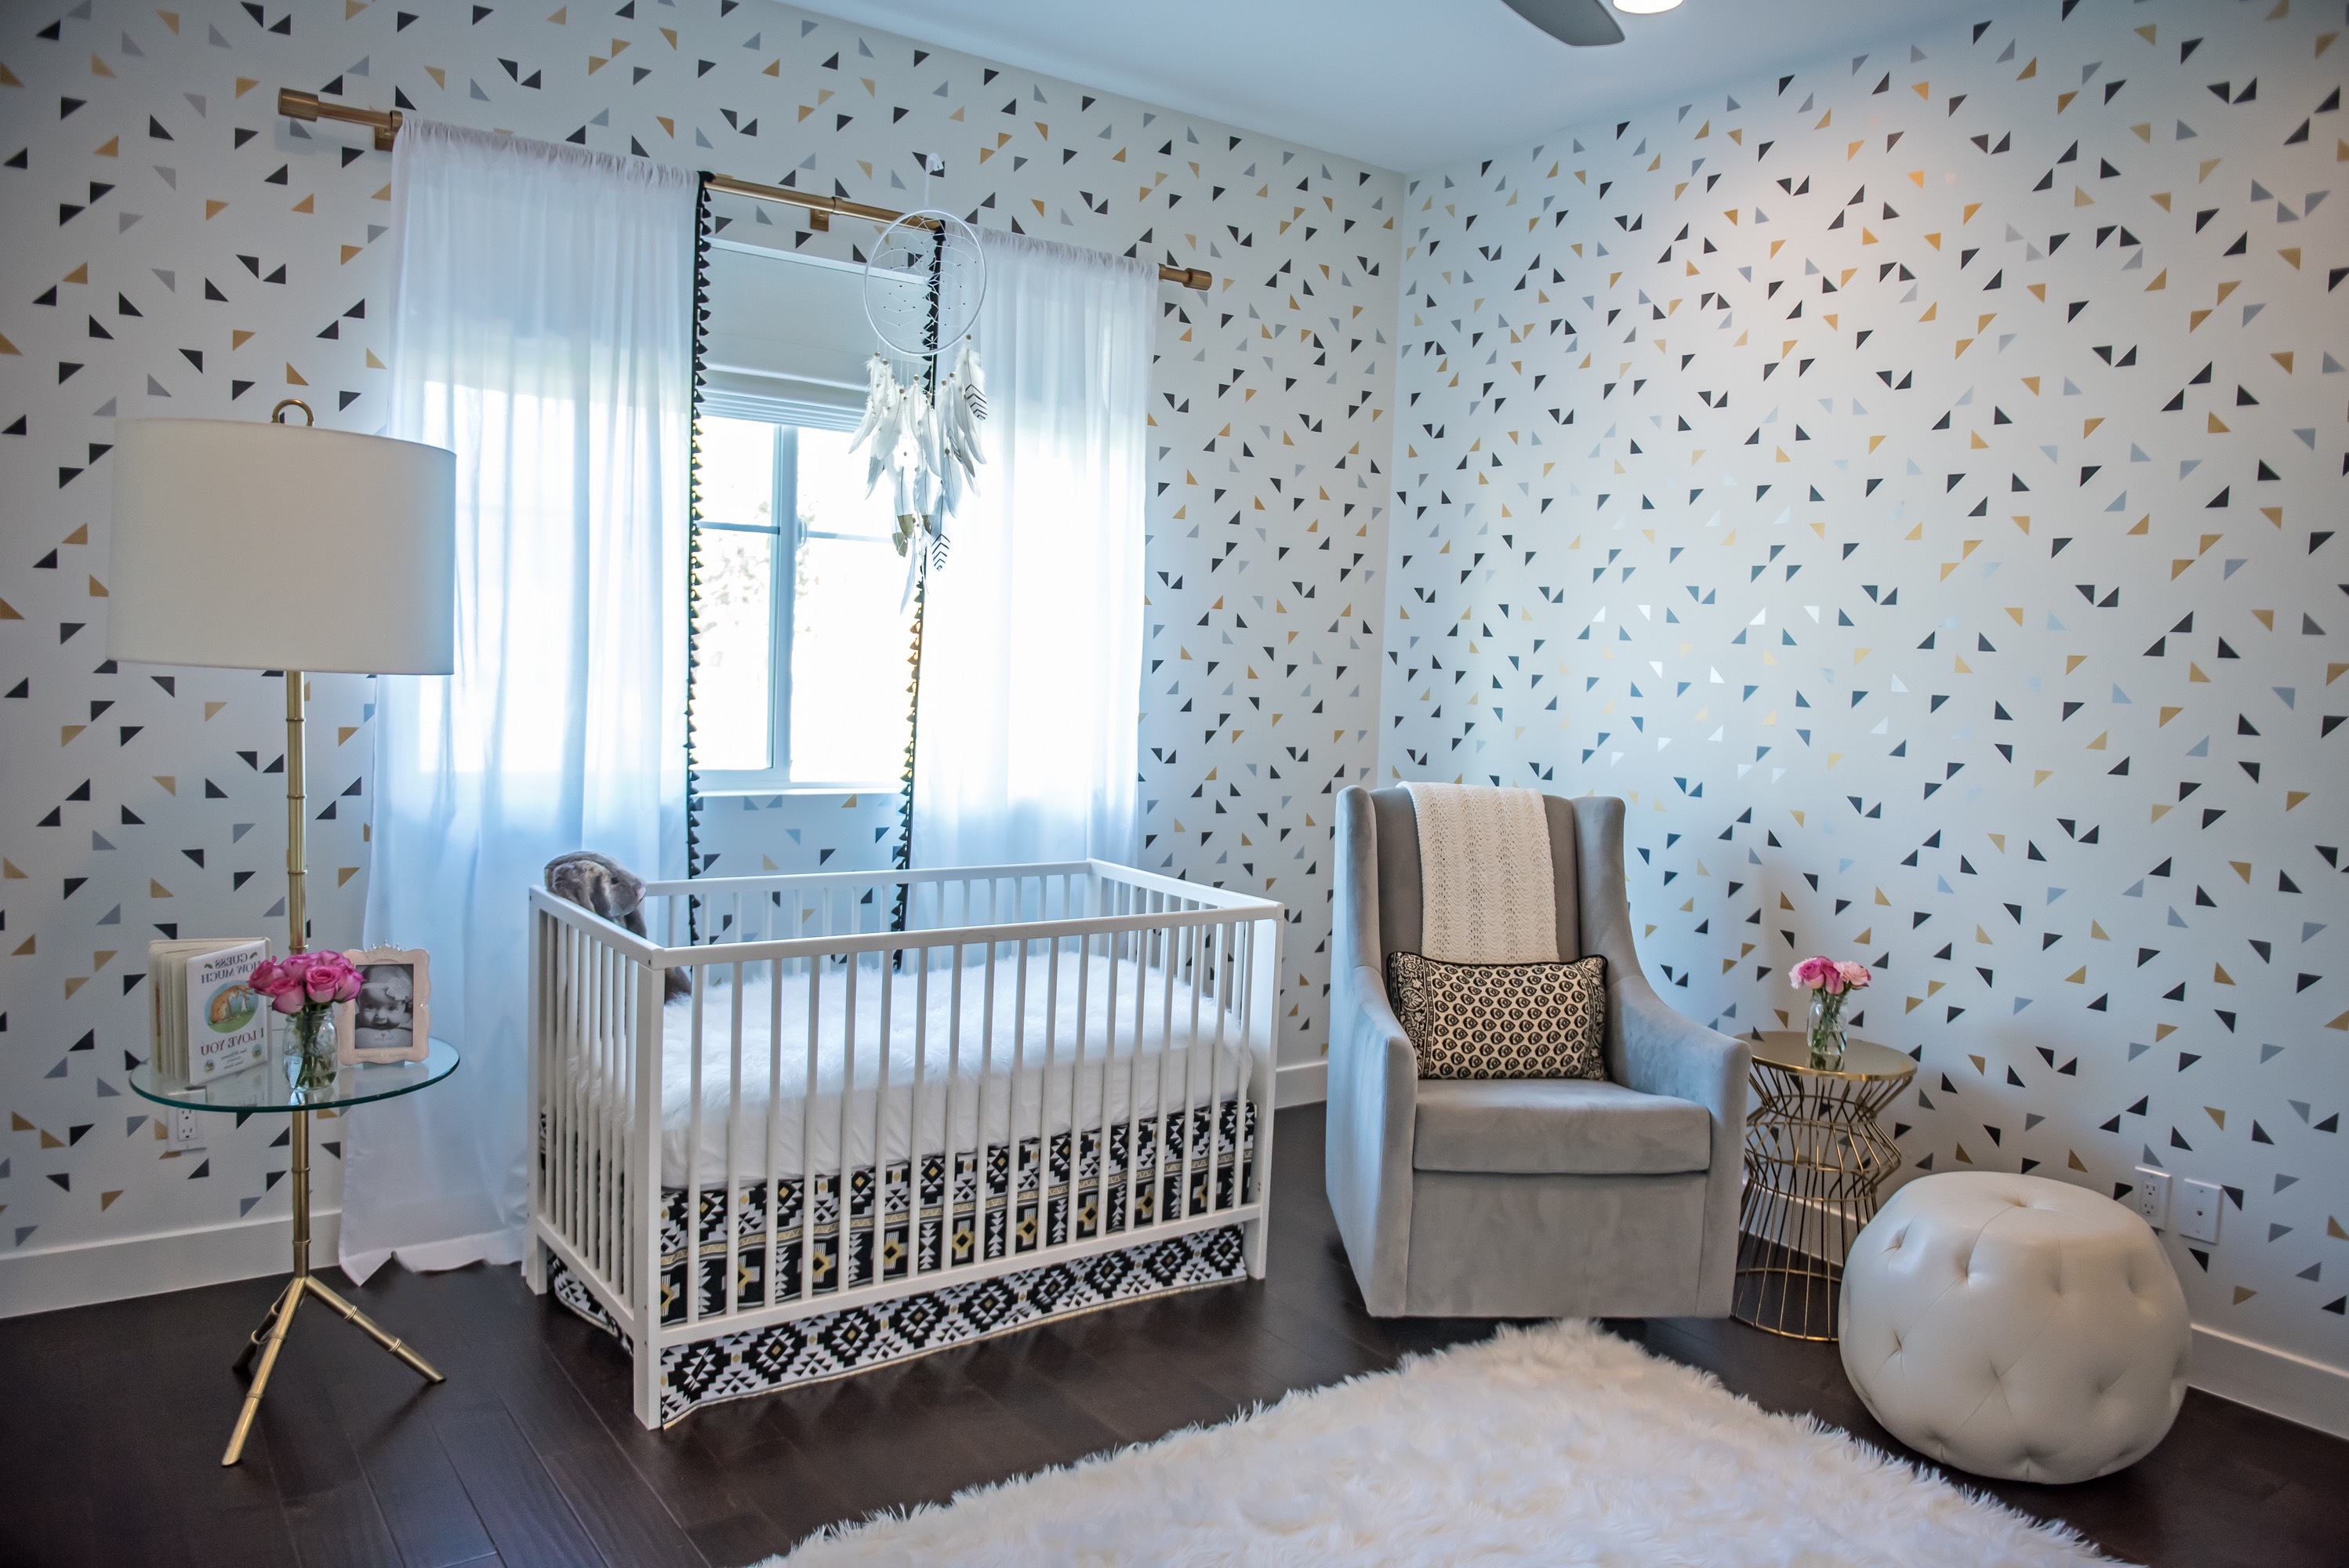 Black And White Nursery With Simple White Crib (Image 3 of 33)